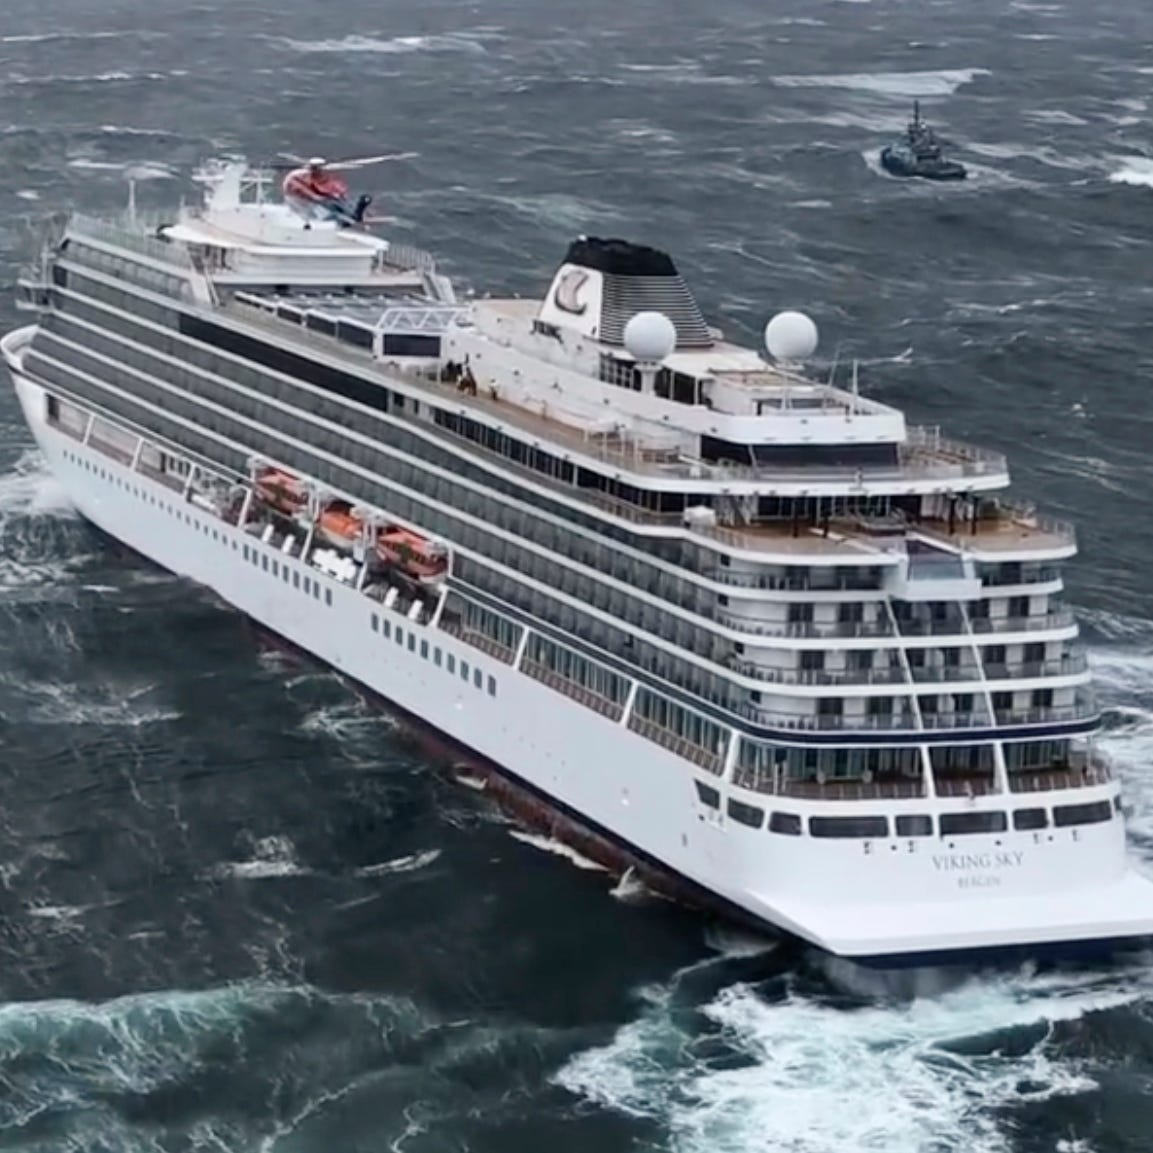 20 hurt aboard Norway cruise ship, 479 rescued by helicopters